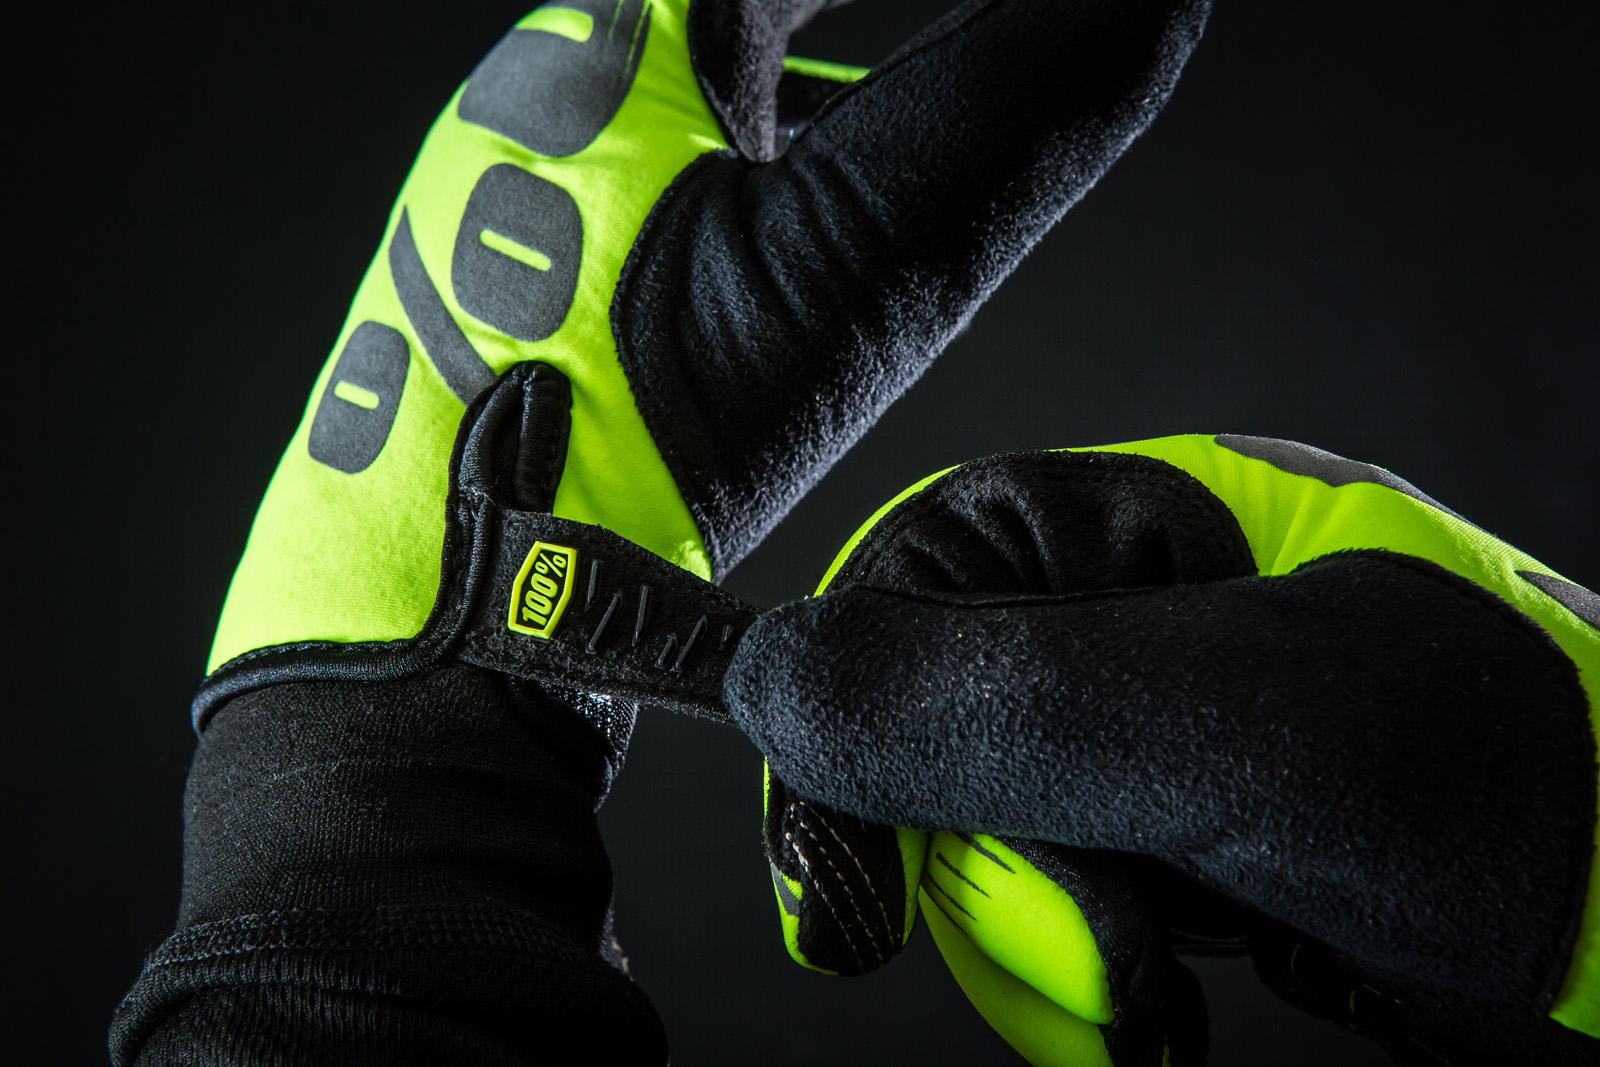 100 Presents The Brisker Glove Now In Neon Yellow